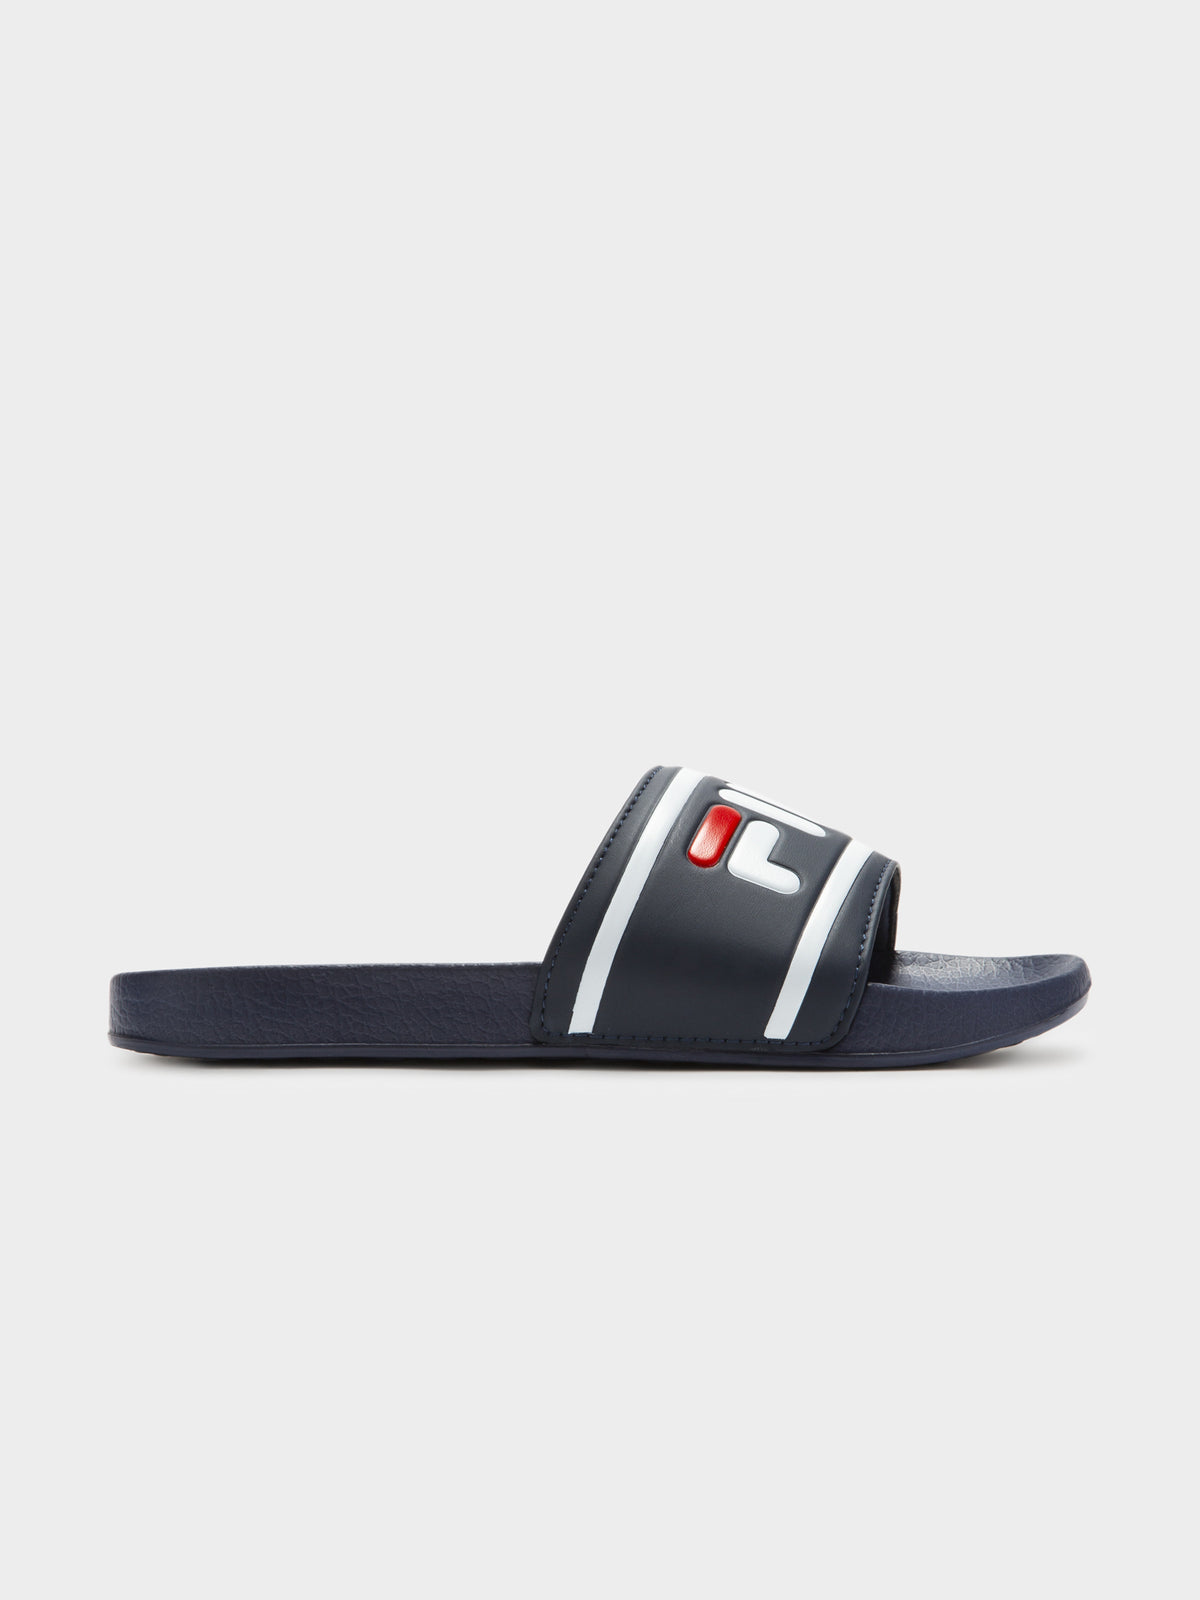 Fila Slides in Navy